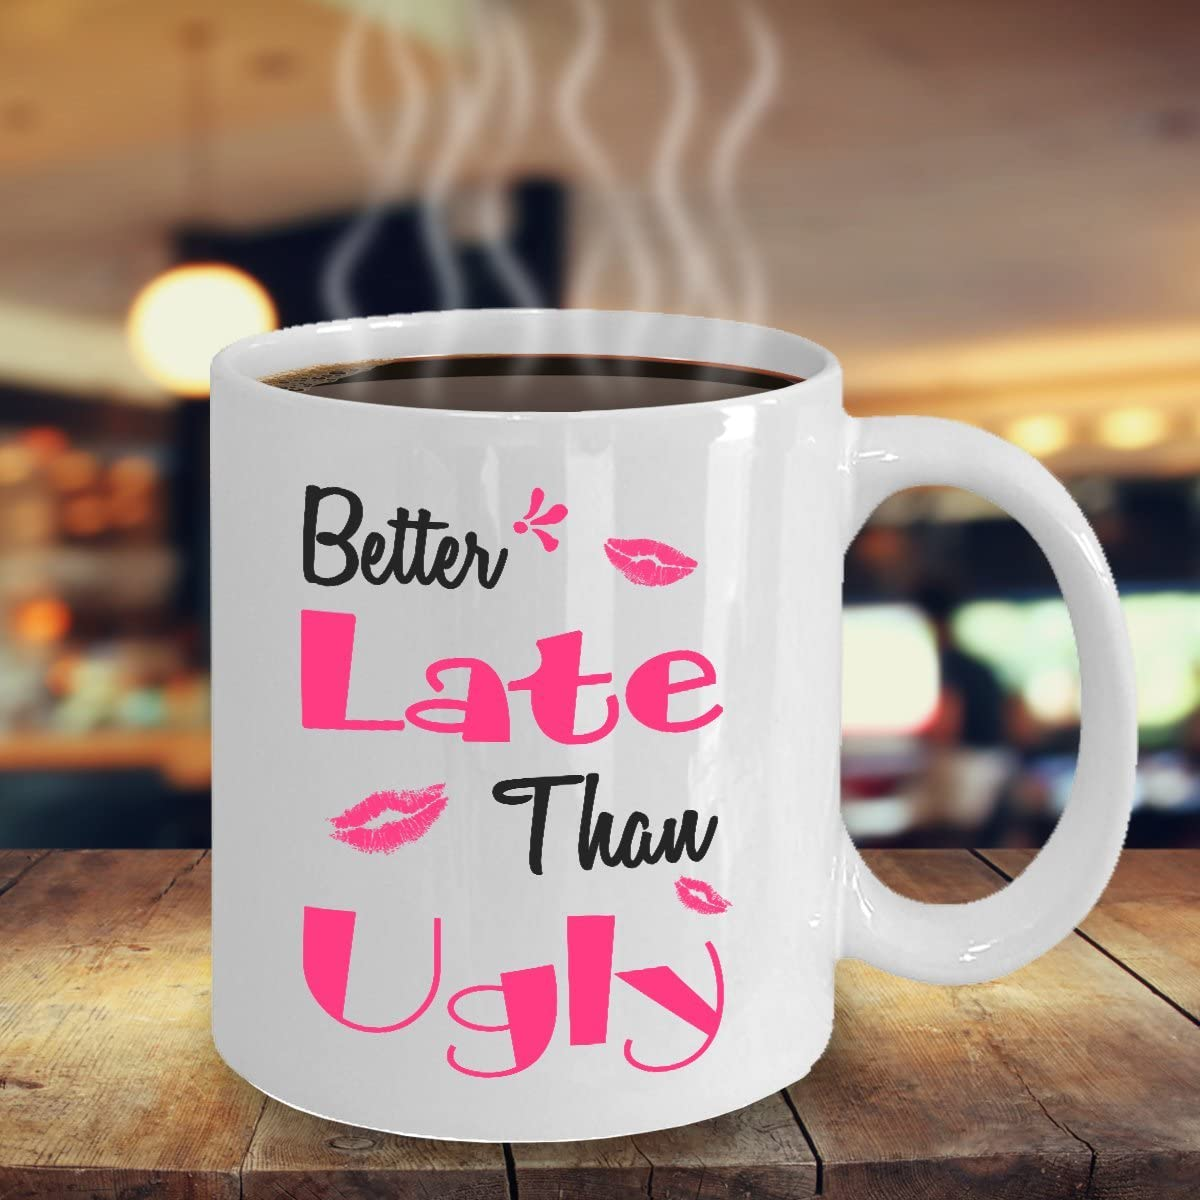 Amazon Com Better Late Than Ugly Mug 11 Oz Ceramic Coffee Mug Tea Cup Best Funny And Inspirational Gift Kitchen Dining